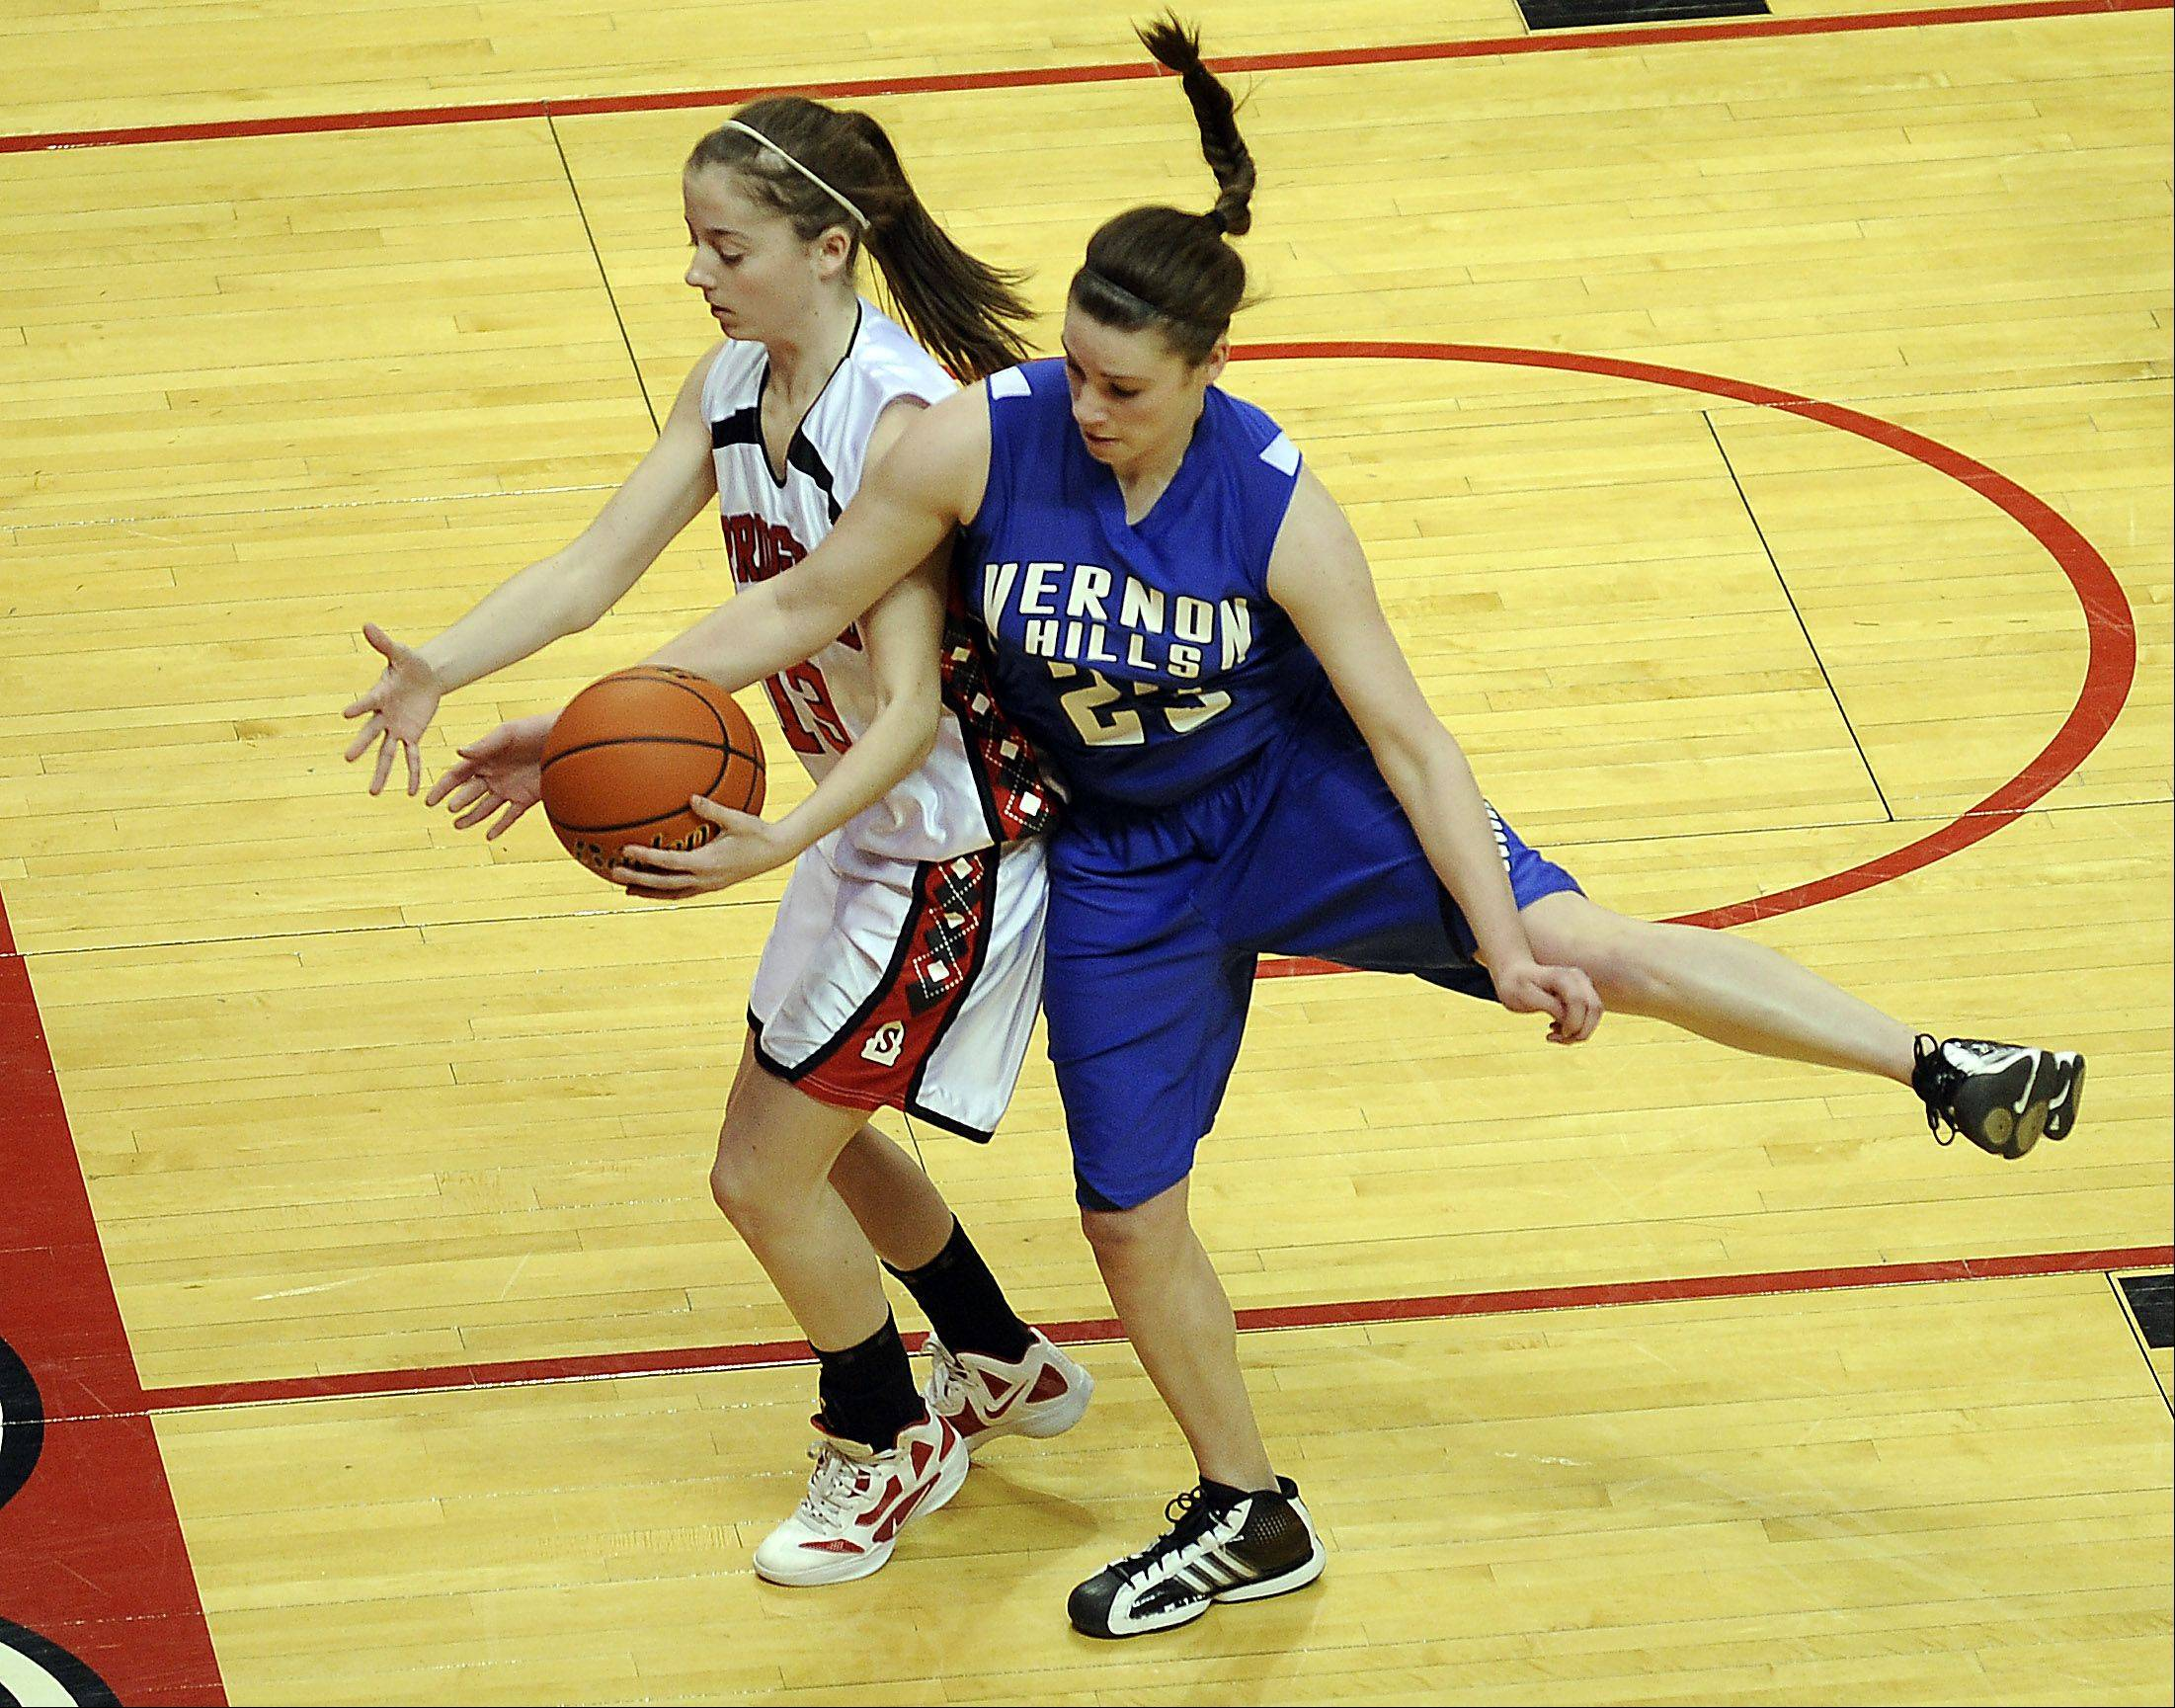 Vernon Hills' Brie Bahlmann fouls Springfield's Julia Rosen as they battle for control in the first quarter of play in the girls 2012 IHSA Class 3A in Normal, Illinois on Friday.